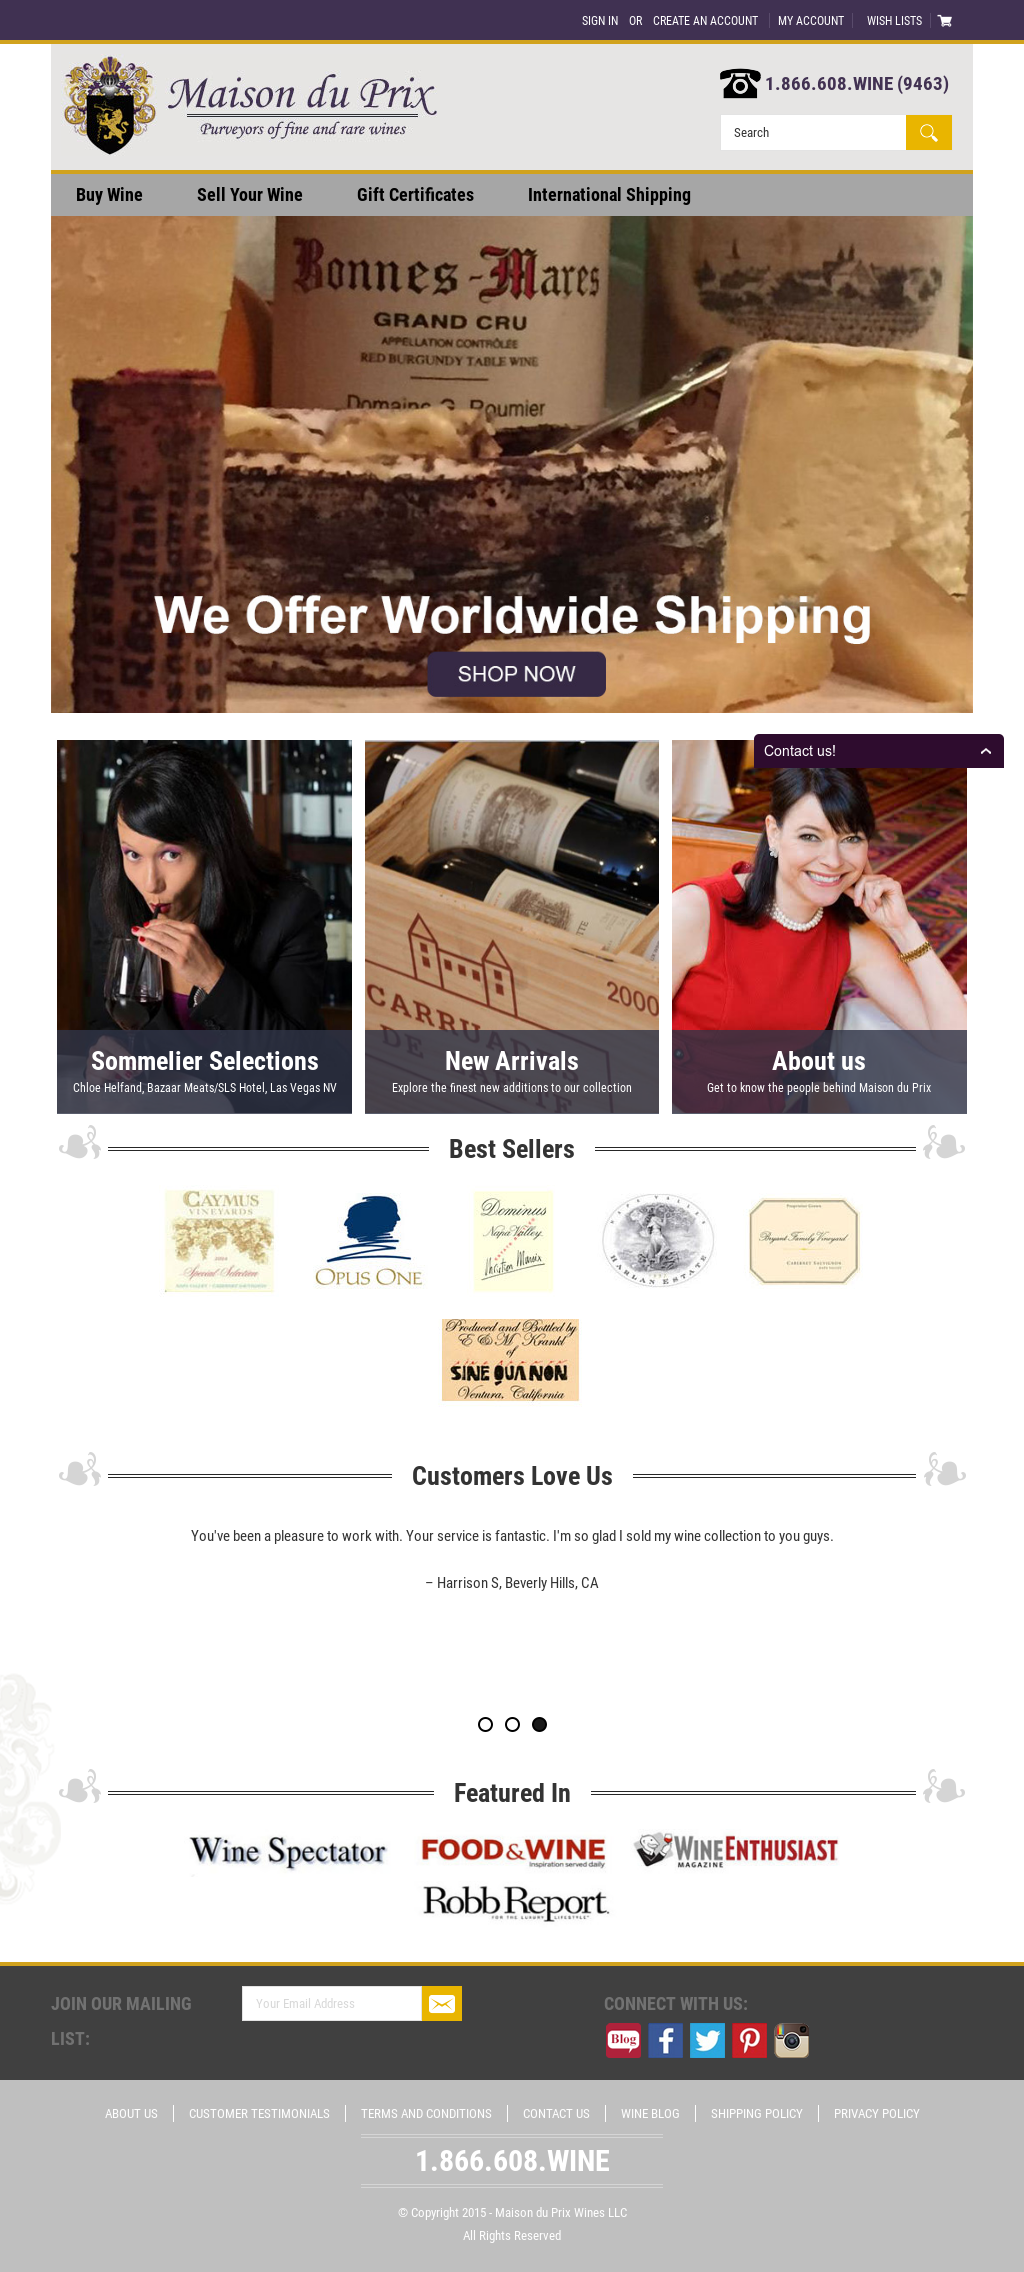 Maison du prix wines company profile revenue employees for Acquisition maison